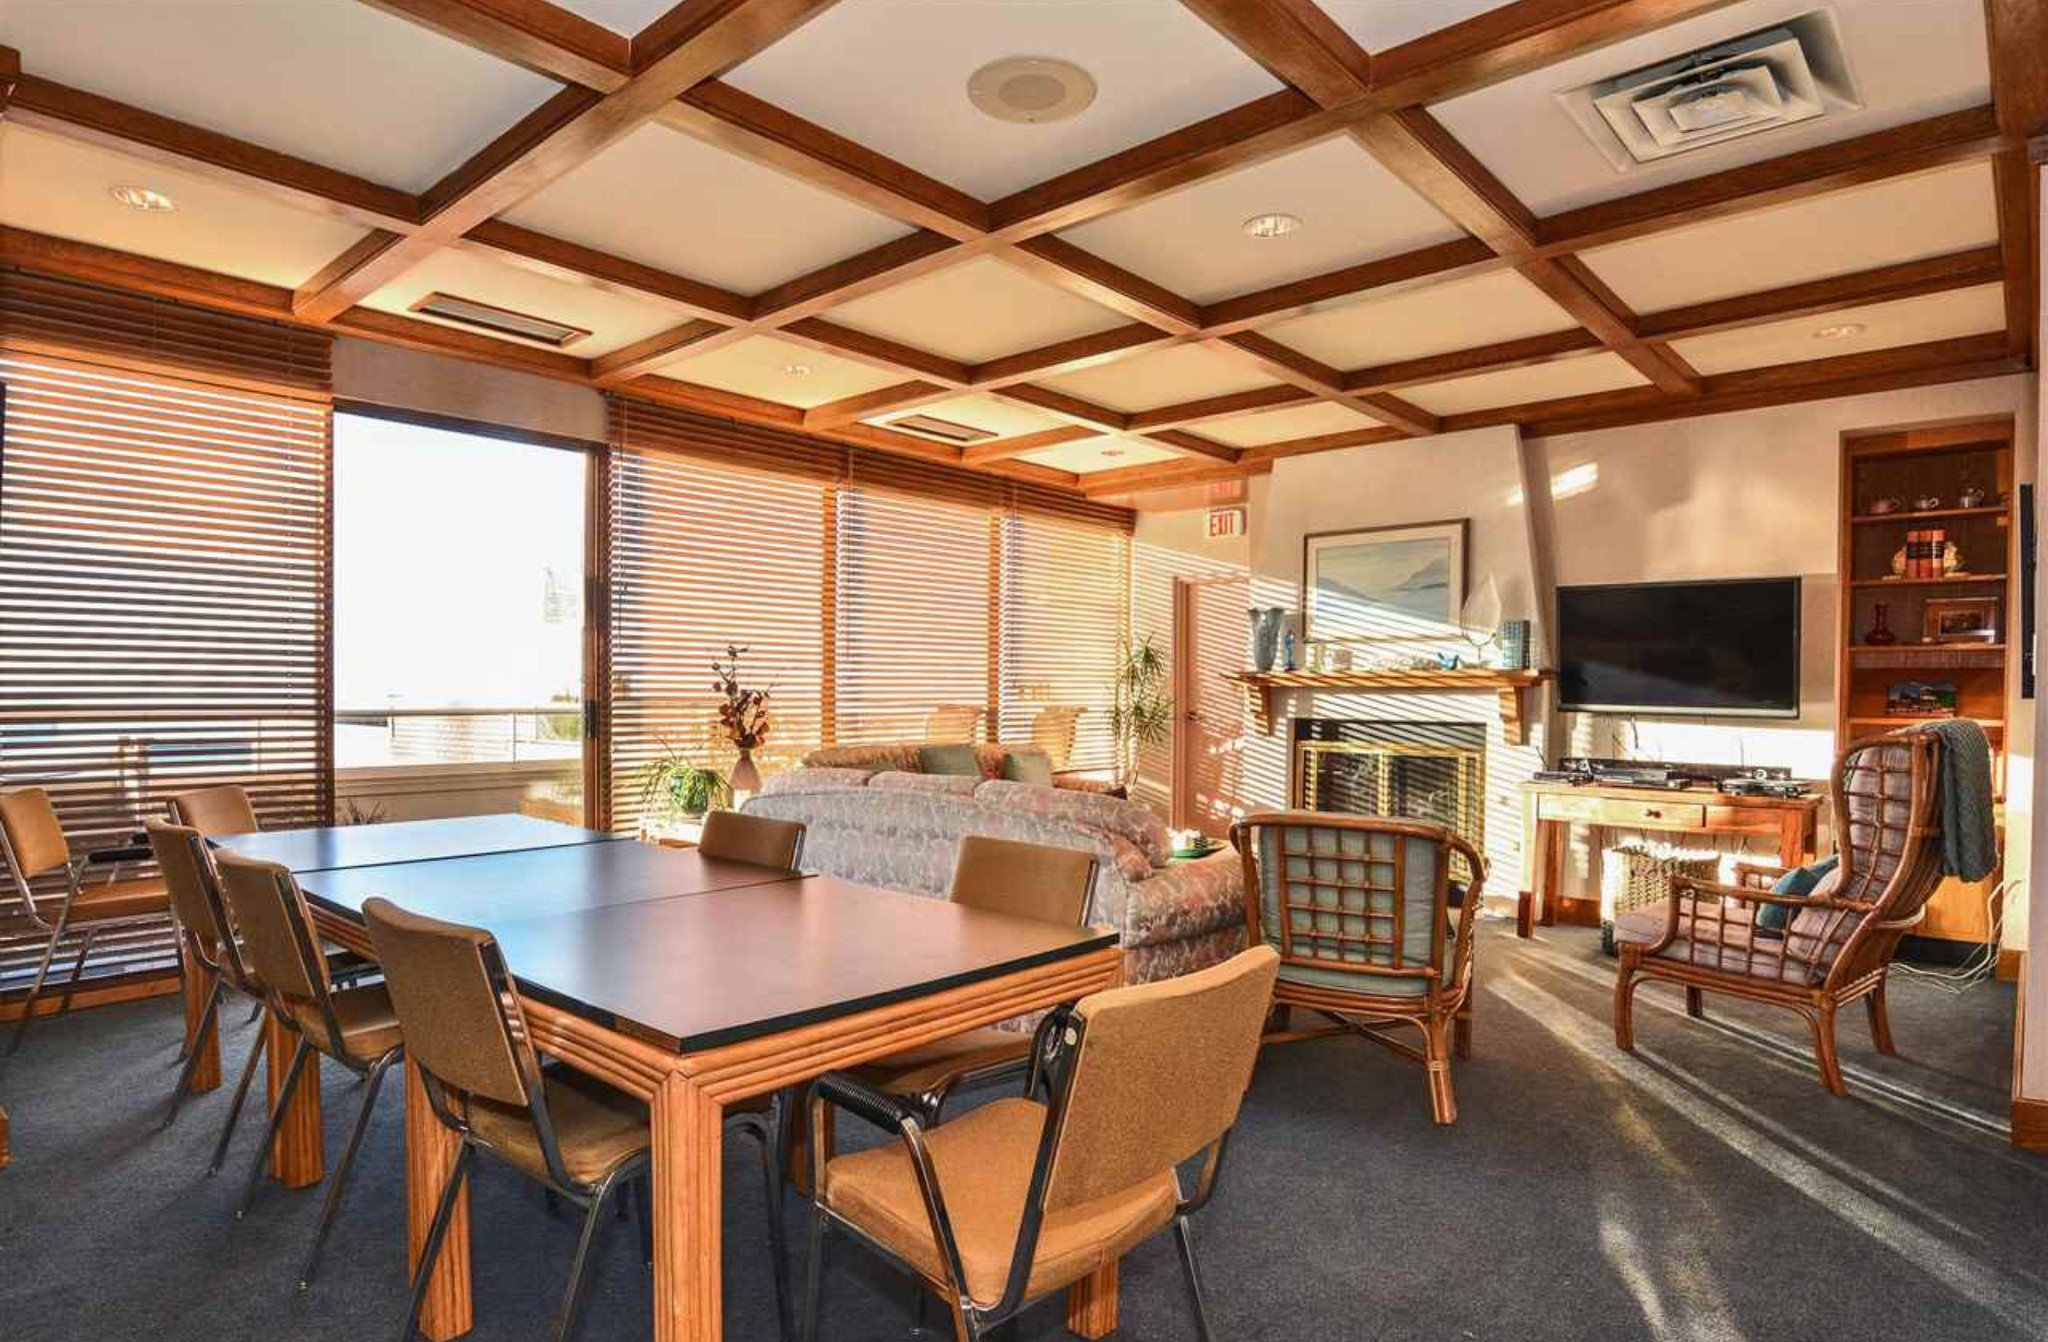 Photo 13: Photos: 405, 15111 Russell Avenue: White Rock Condo for sale (South Surrey White Rock)  : MLS®# R2133728